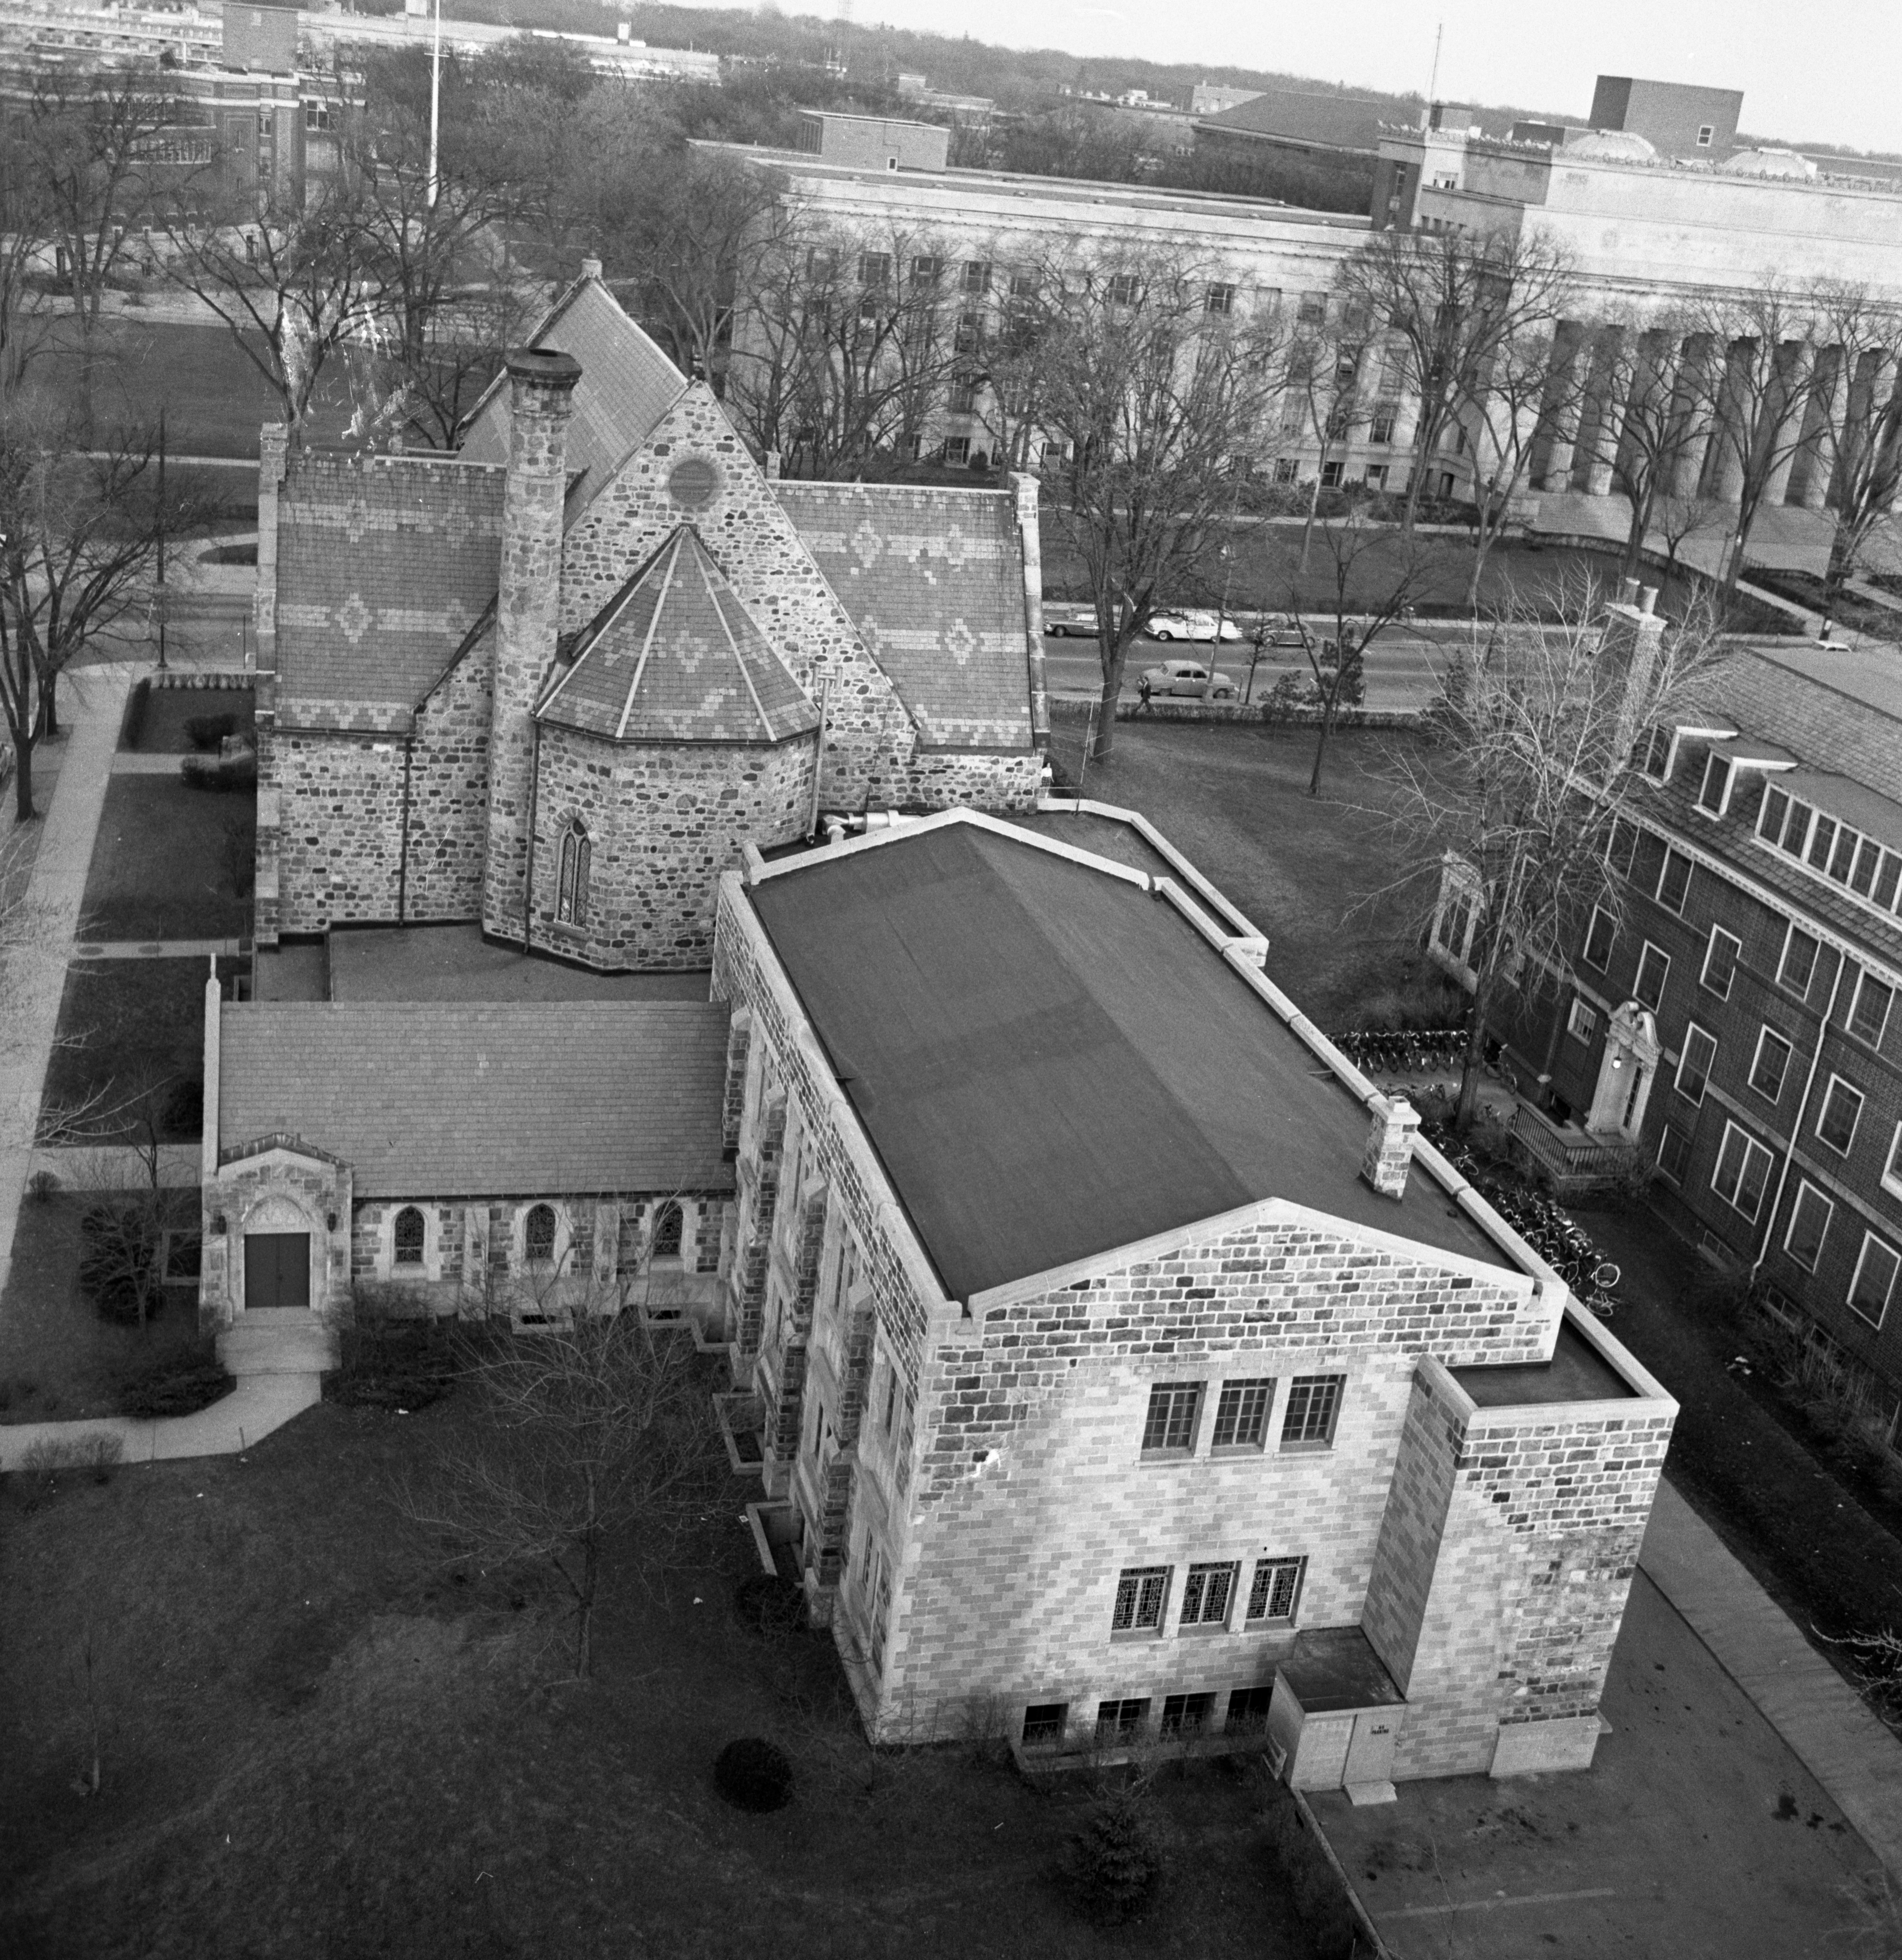 First Congregational Church, March 1962 image